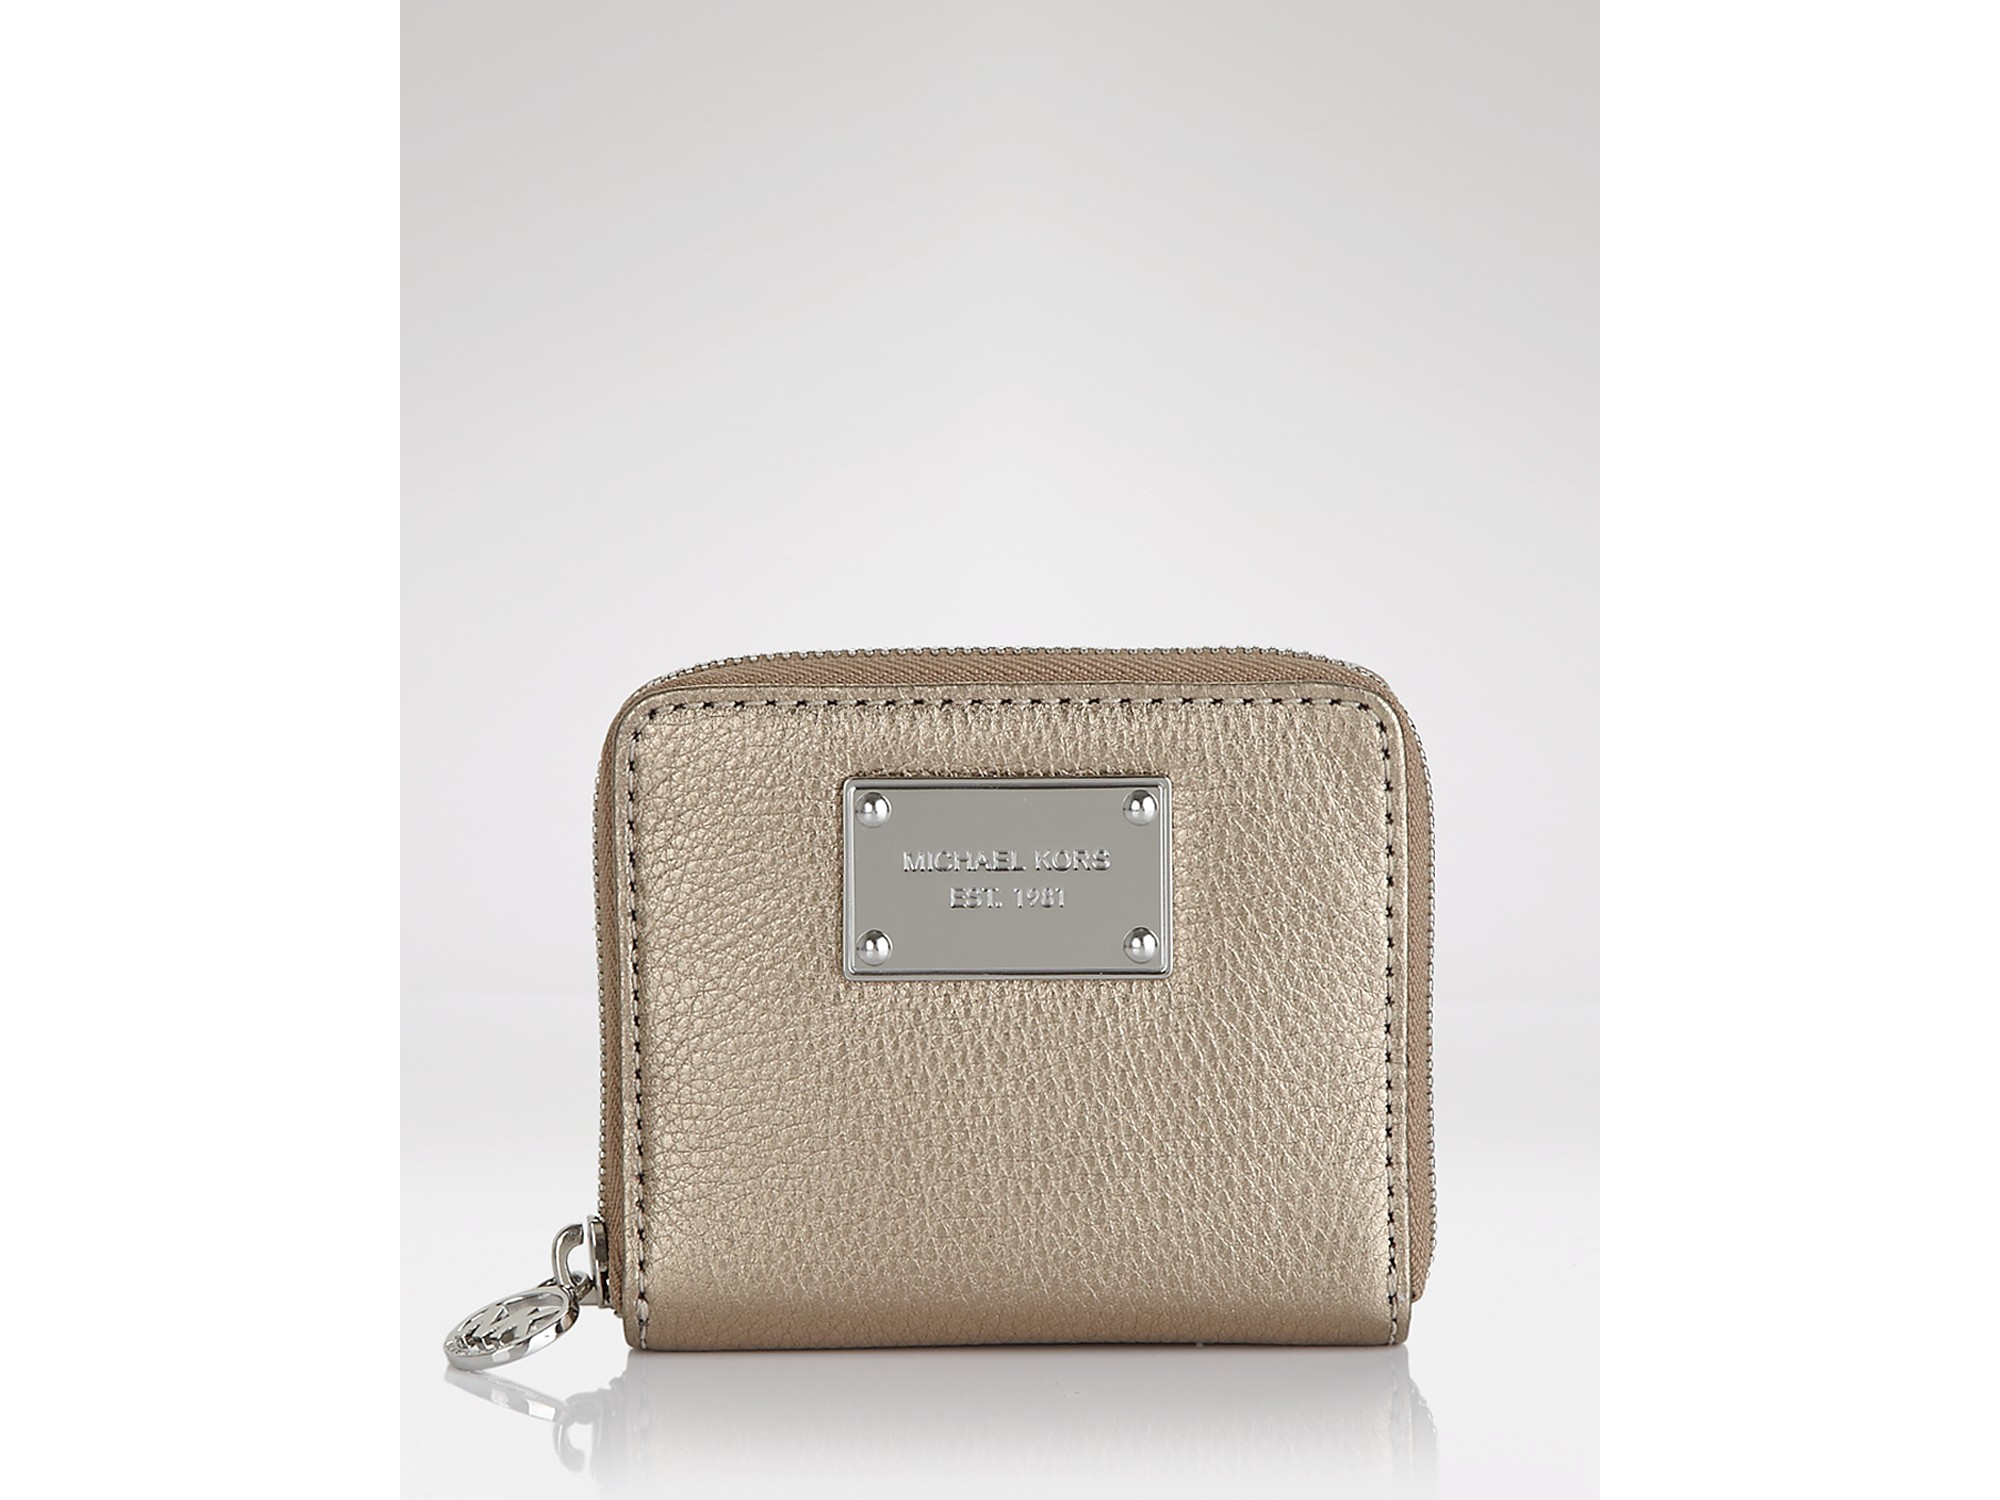 1bc63d98a5f0 Michael Kors Jet Set Zip Around Wallet Small | Stanford Center for ...